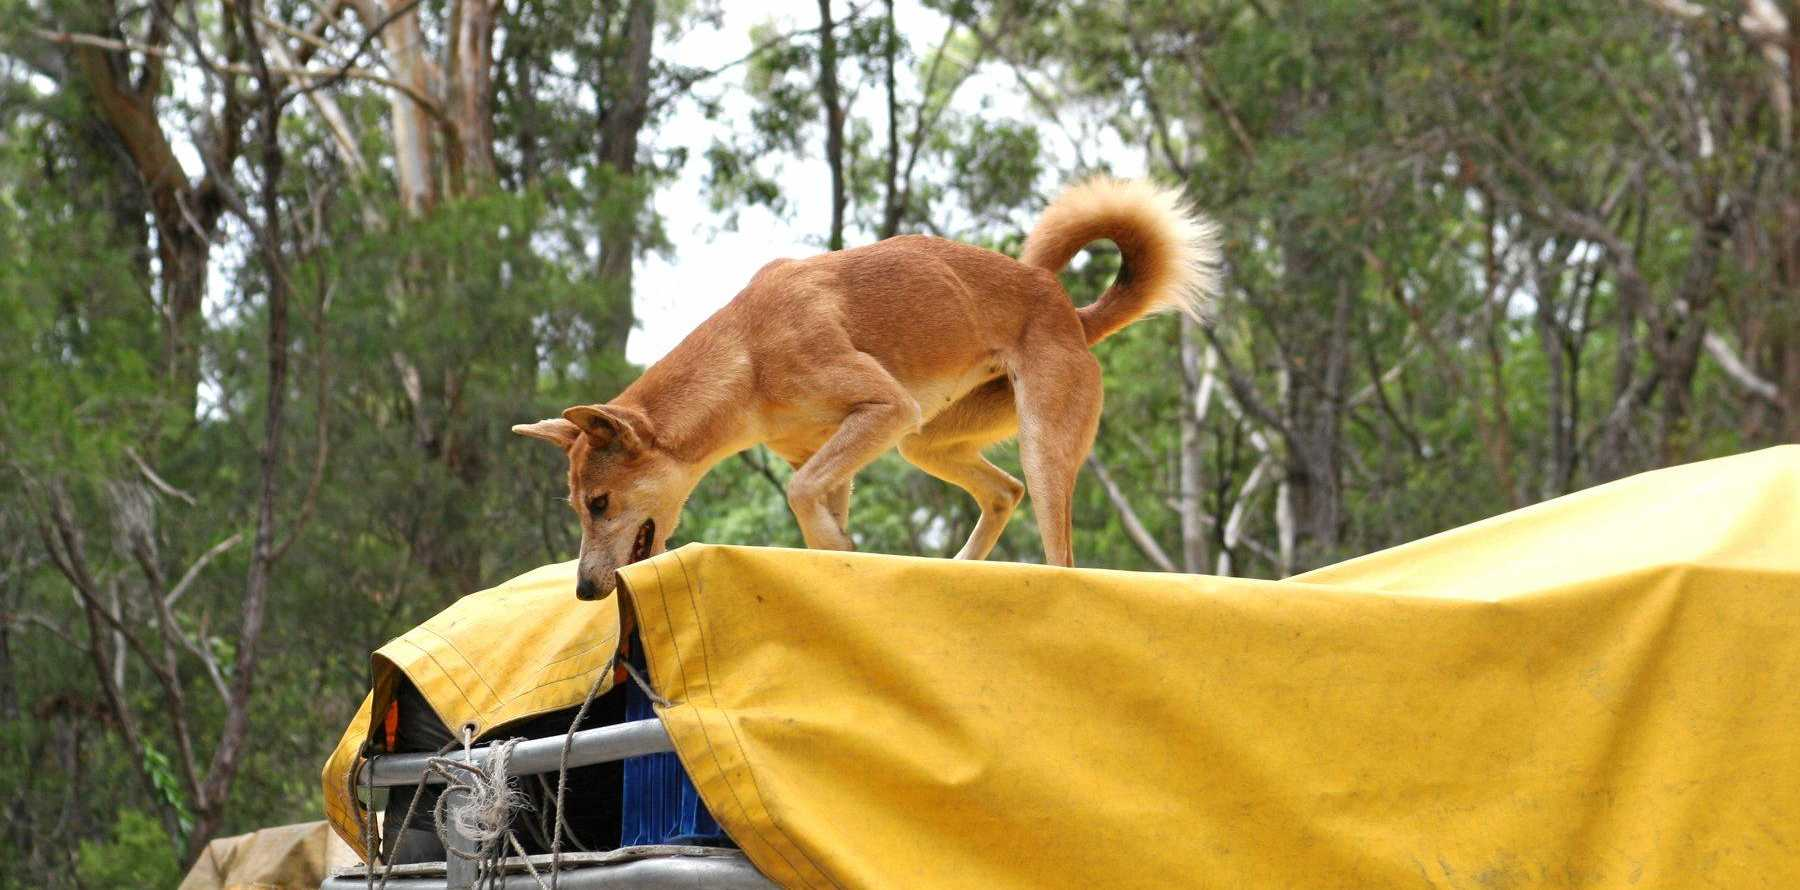 CHEEKY: A dingo caught stealing food from the roof rack of a mini bus. Tourists are warned to keep all food secure and out of reach of the dingo.